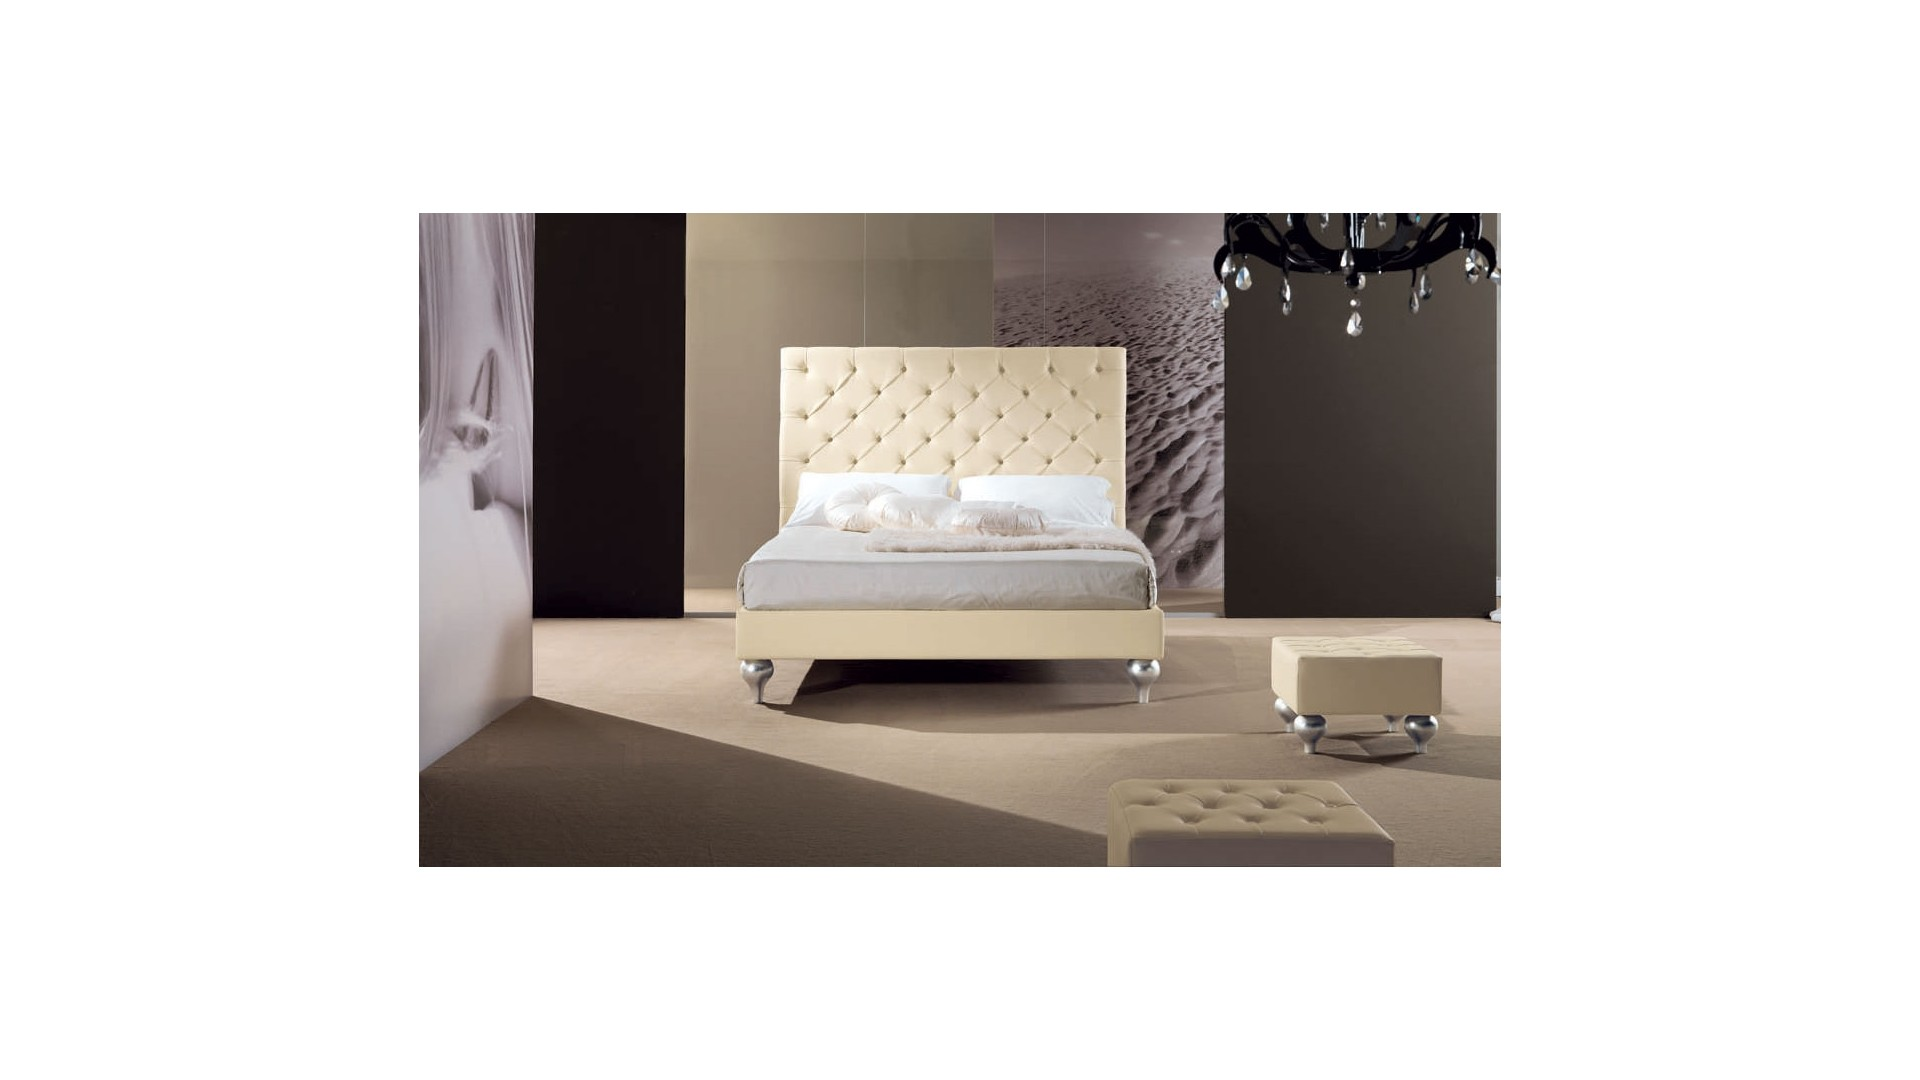 lit double avec t te de lit haute toute capitonn e piermaria so nuit. Black Bedroom Furniture Sets. Home Design Ideas